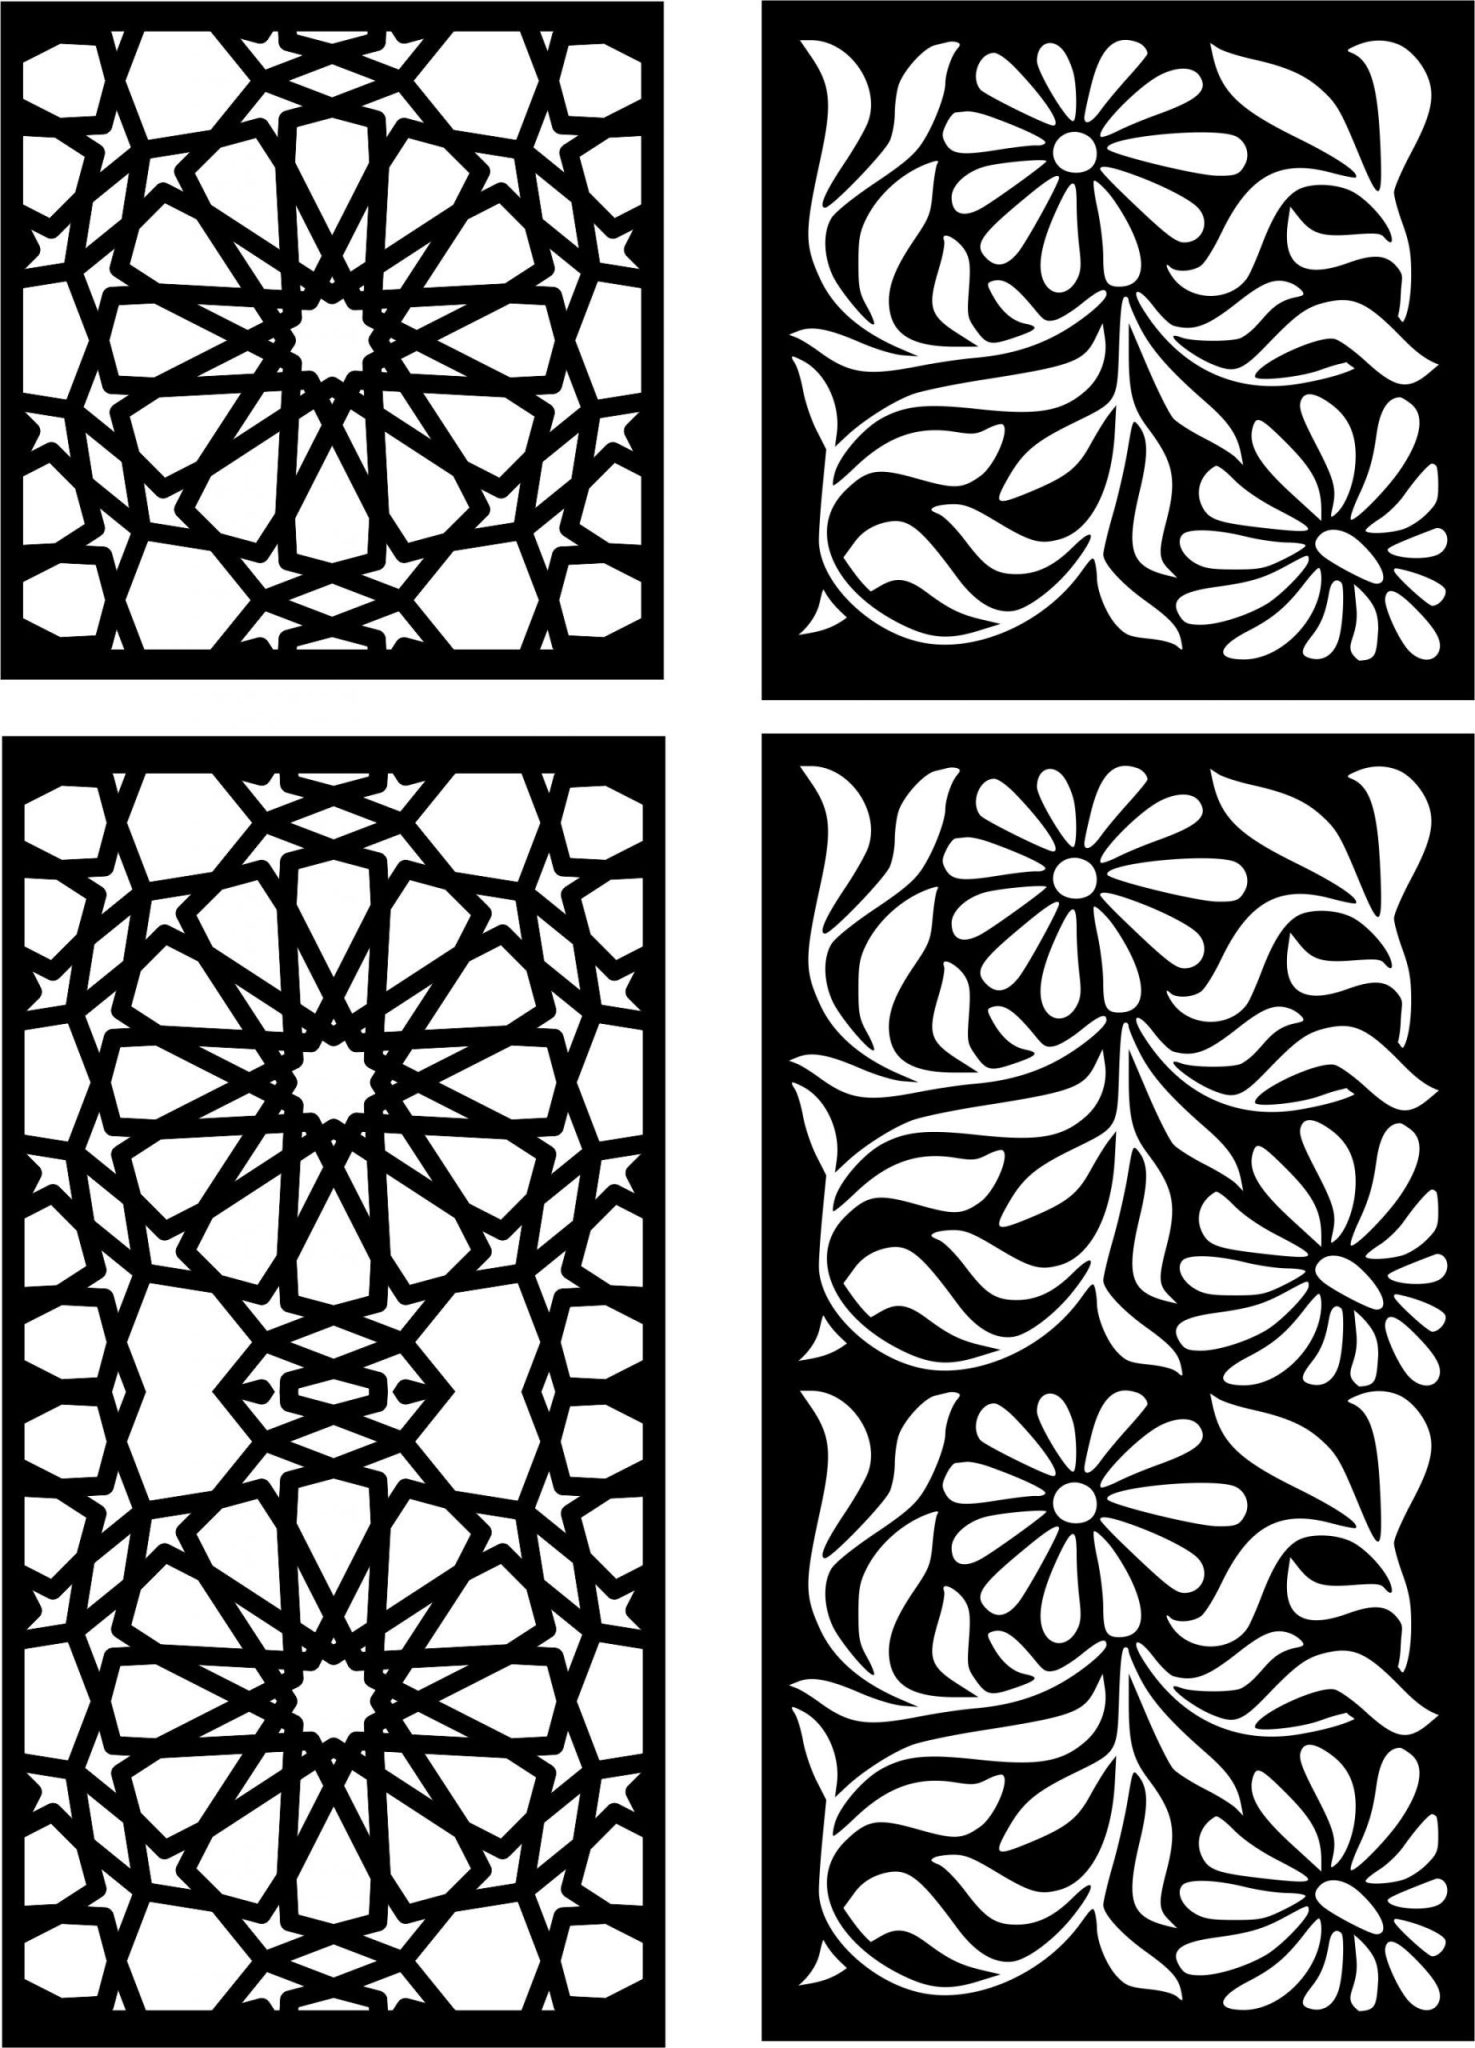 Decorative Screen Patterns For Laser Cutting 27 Free DXF File